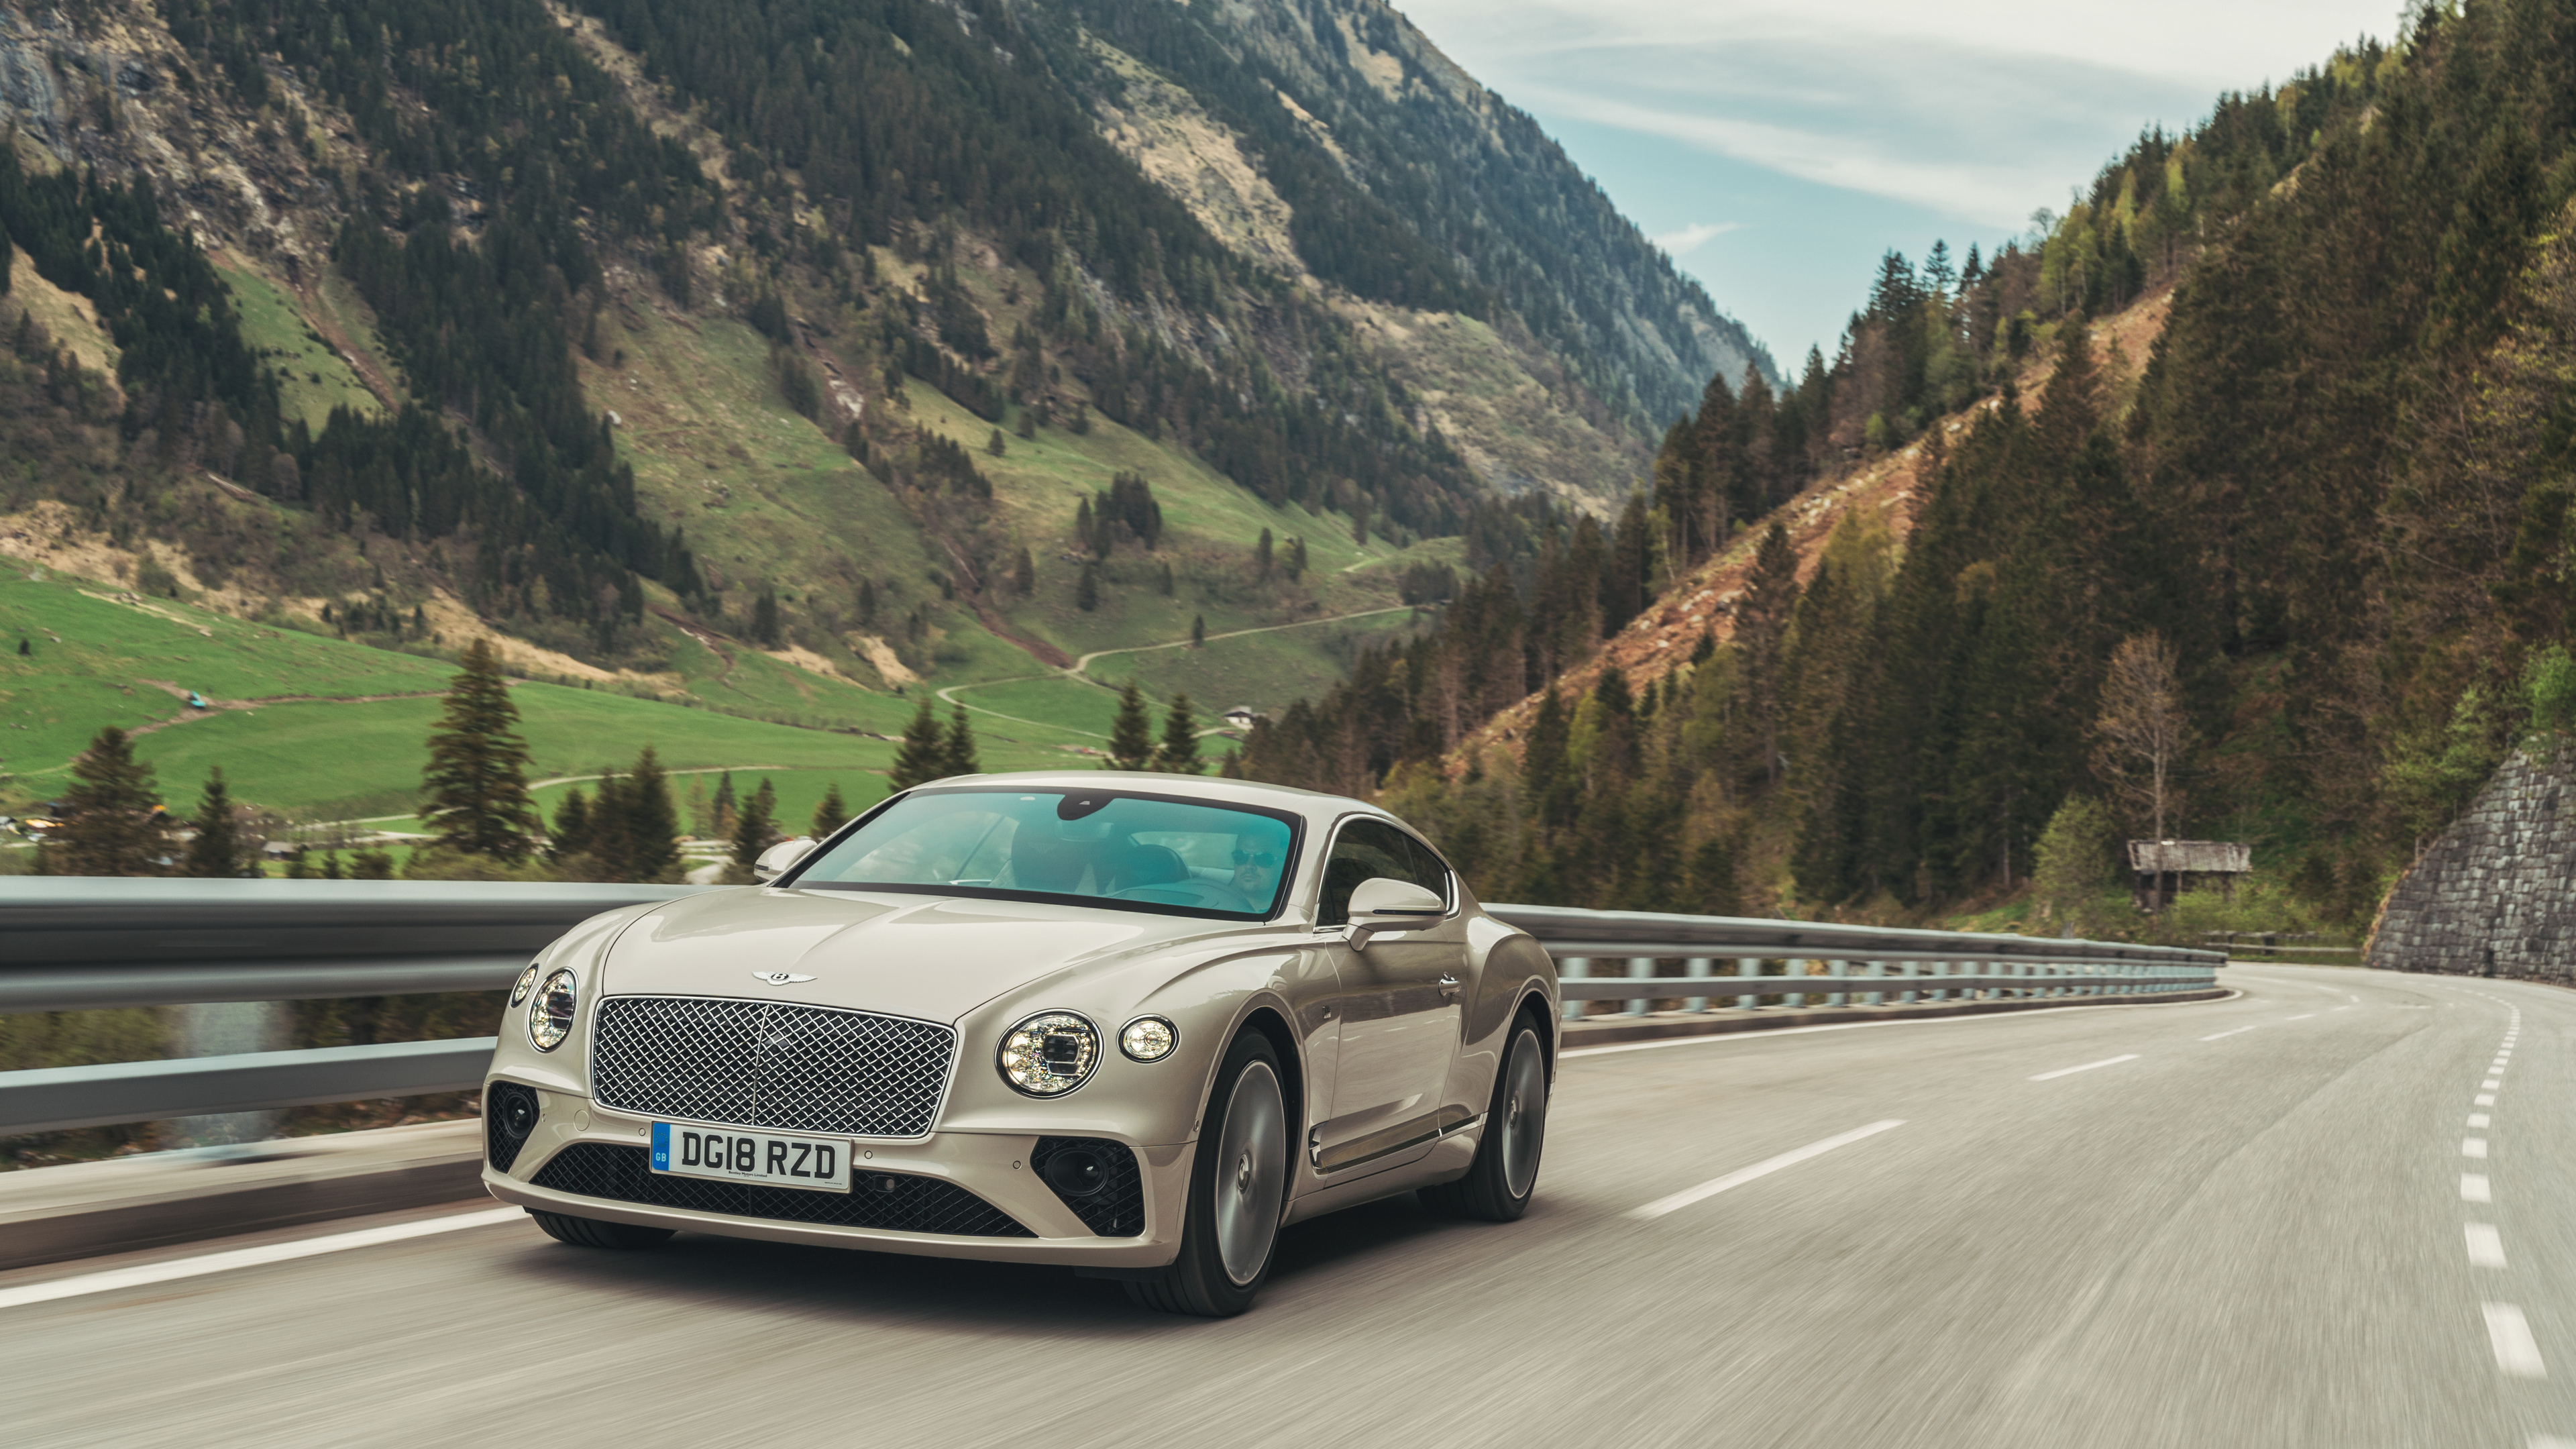 bentley continental gt white sand 1539113181 - Bentley Continental GT White Sand - hd-wallpapers, cars wallpapers, bentley wallpapers, bentley continental gt wallpapers, 5k wallpapers, 4k-wallpapers, 2018 cars wallpapers